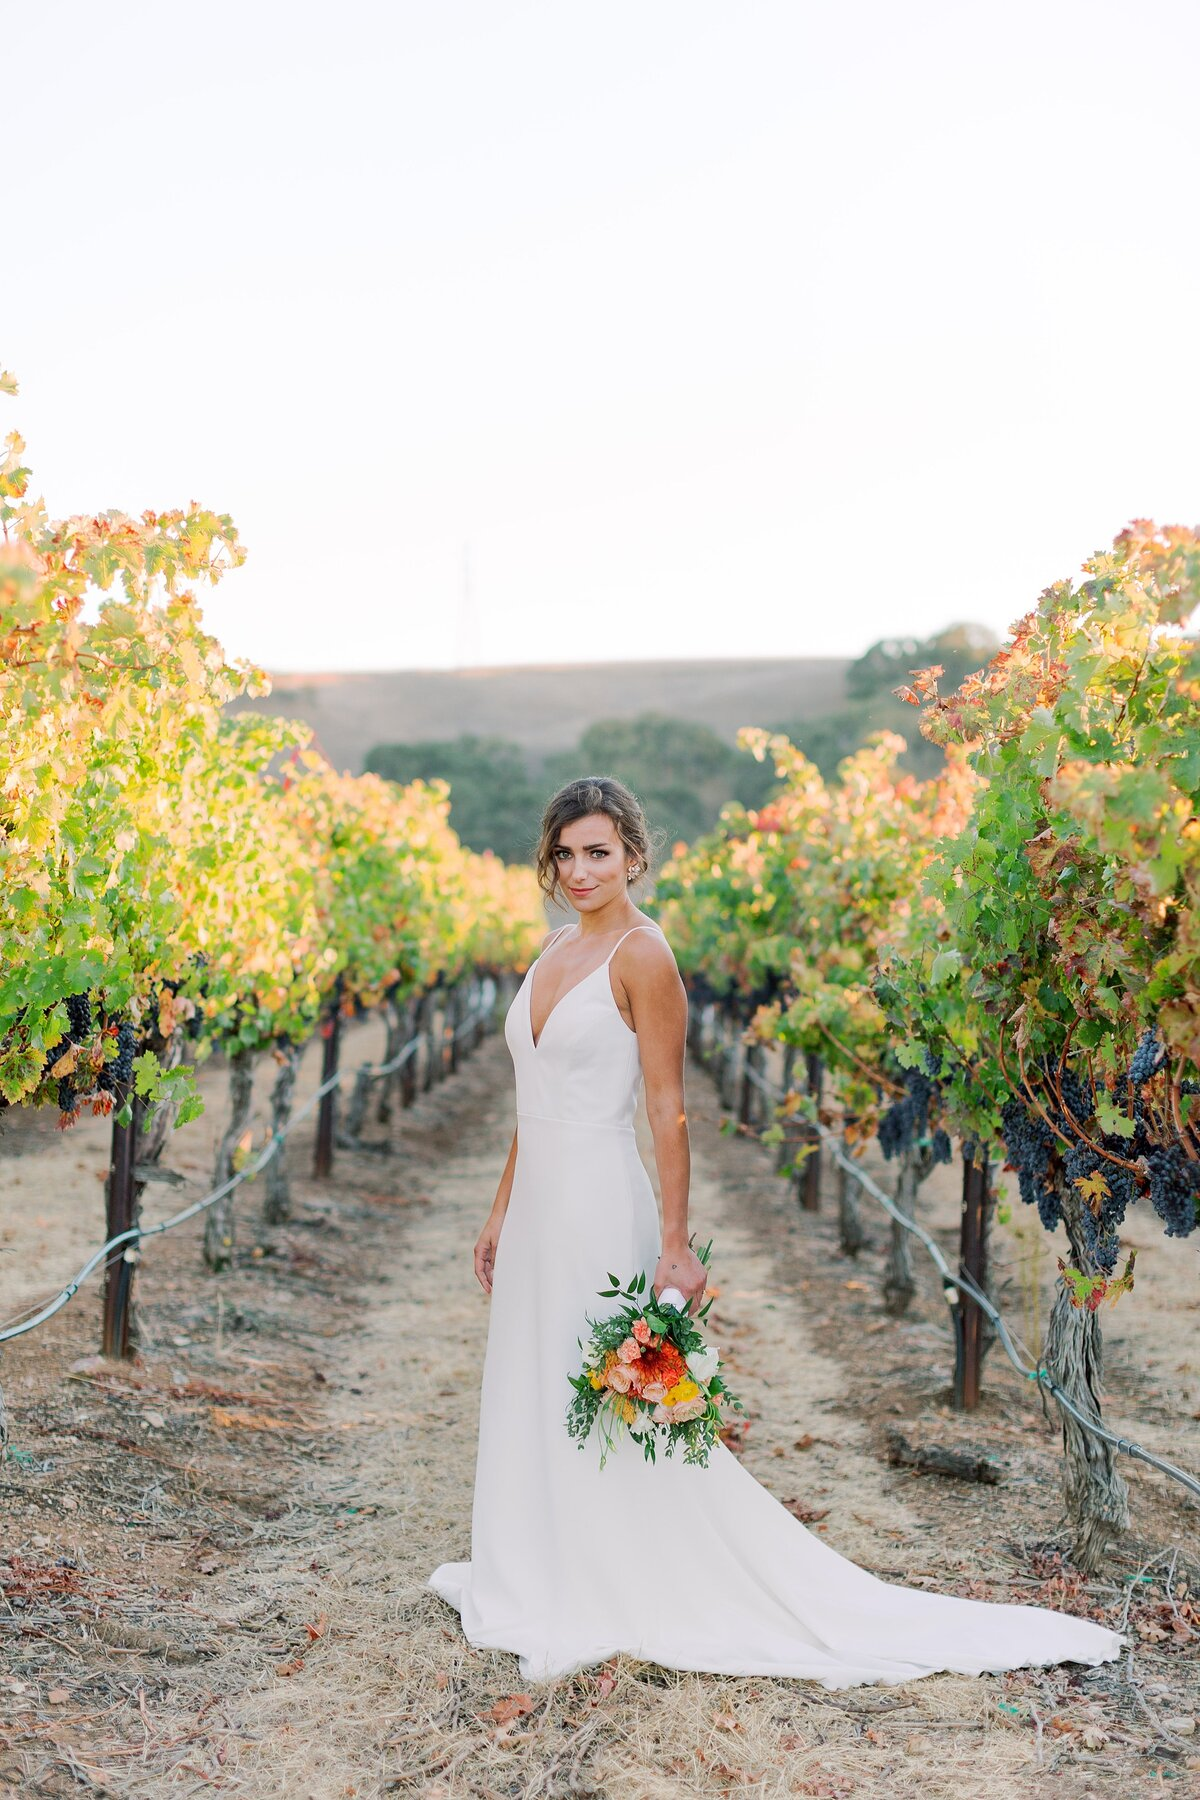 20191020 Modern Elegance Wedding Styled Shoot at Three Steves Winery Livermore_Bethany Picone Photography-166_WEB